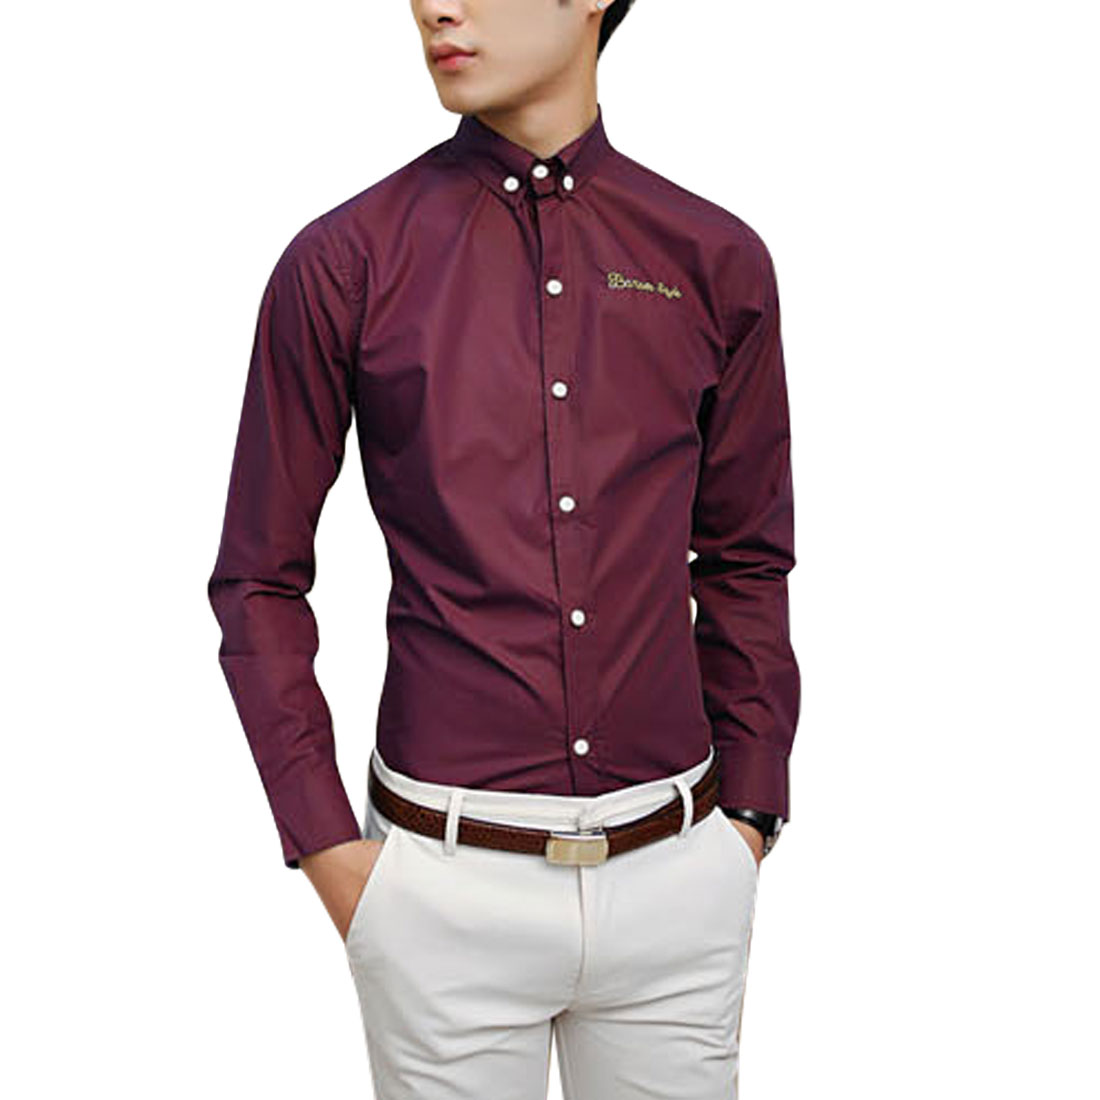 Azzuro Men's Button Cuffs Embroidery Letters Detail Casual Shirt Red (Size M / 40��